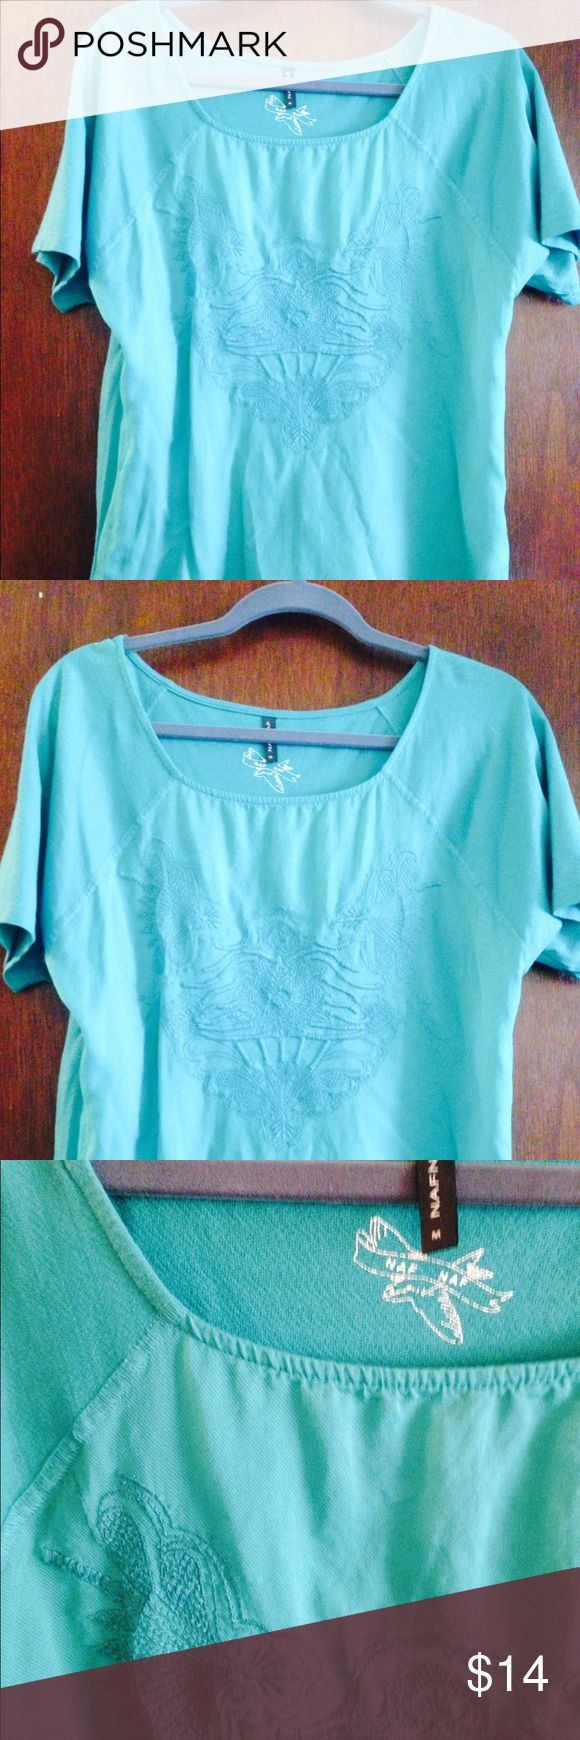 """*From Paris* green (teal) embroidered blouse! I bought this gorgeous understated embroidered top at a boutique called NafNaf in Paris. It is a chain there but is rare to find here!! Worn only once. In mint condition. Beautiful teal color! Cute tucked in front or free flowing. (5'6"""", 135 lbs: fits well, but loose) Naf Naf Tops Tees - Short Sleeve"""